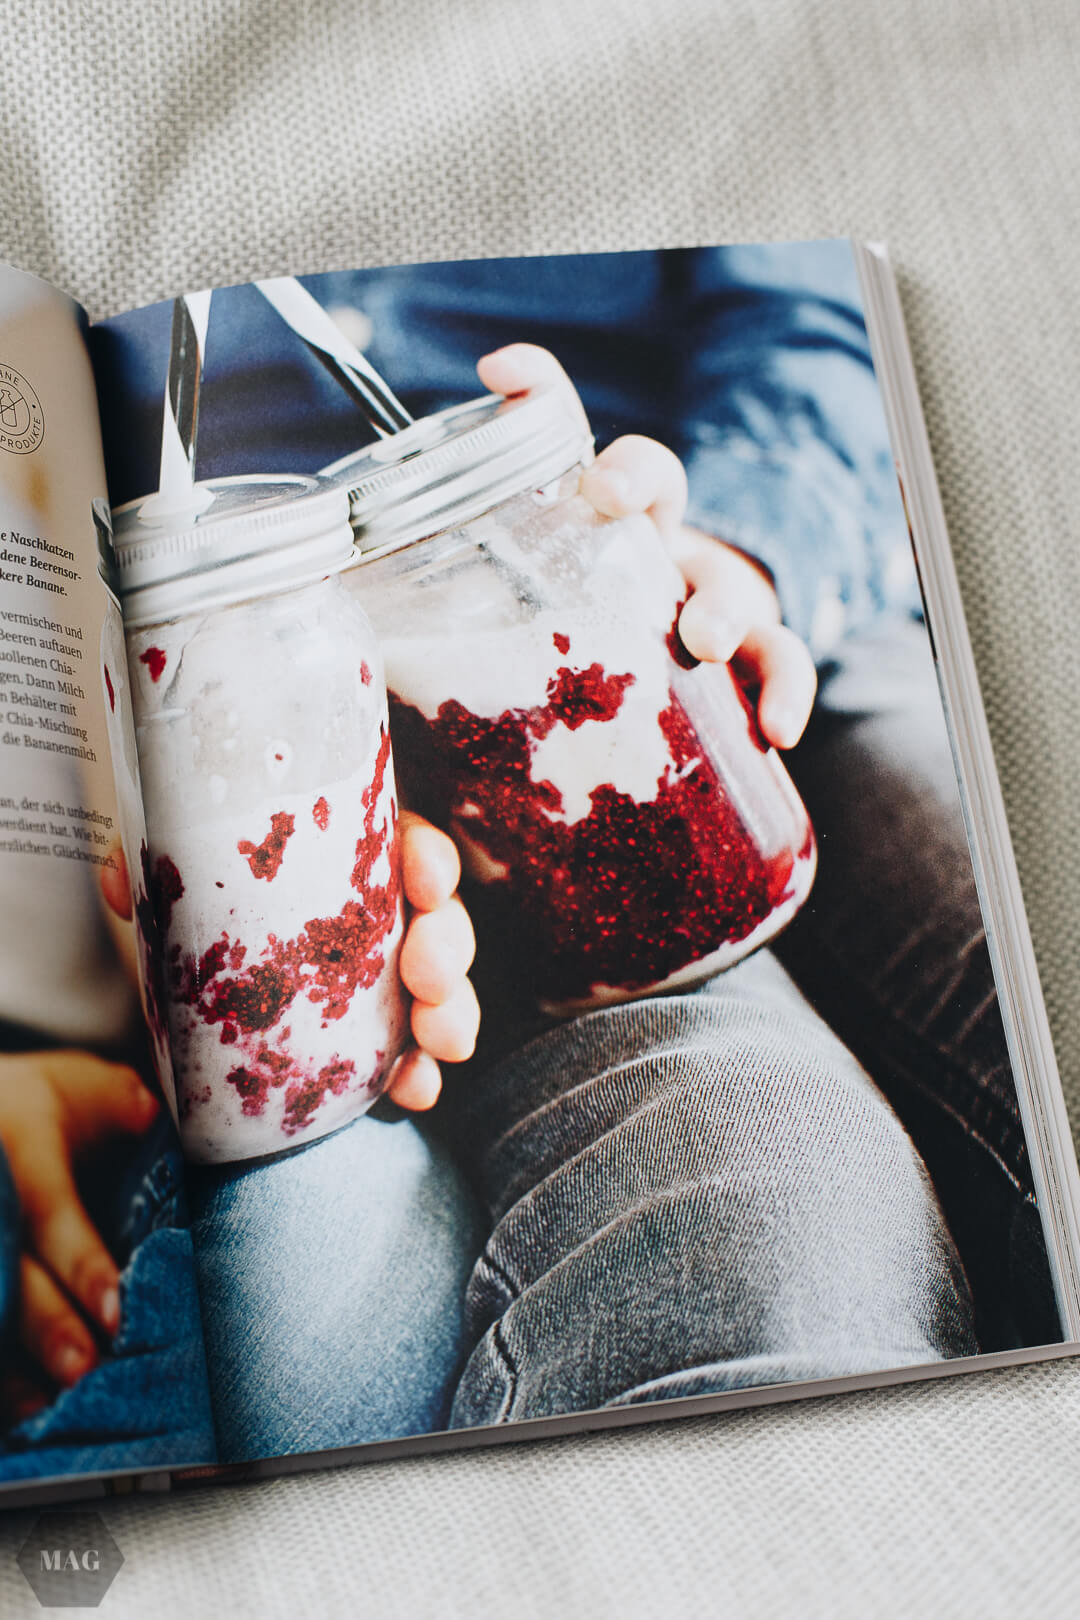 Chia Beeren Smoothie, Beeren-Chia-Smoothie, veganer Beeren-Smoothie, Johannisbeeren Chia Smoothie, Food Pharmacy Rezension, Food Pharmacy Buch, Rezension Food Pharmacy, Smoothie Beeren vegan, Smoothie Cashewmilch vegan, Beerensmoothie vegan, Chia Samen Smoothie